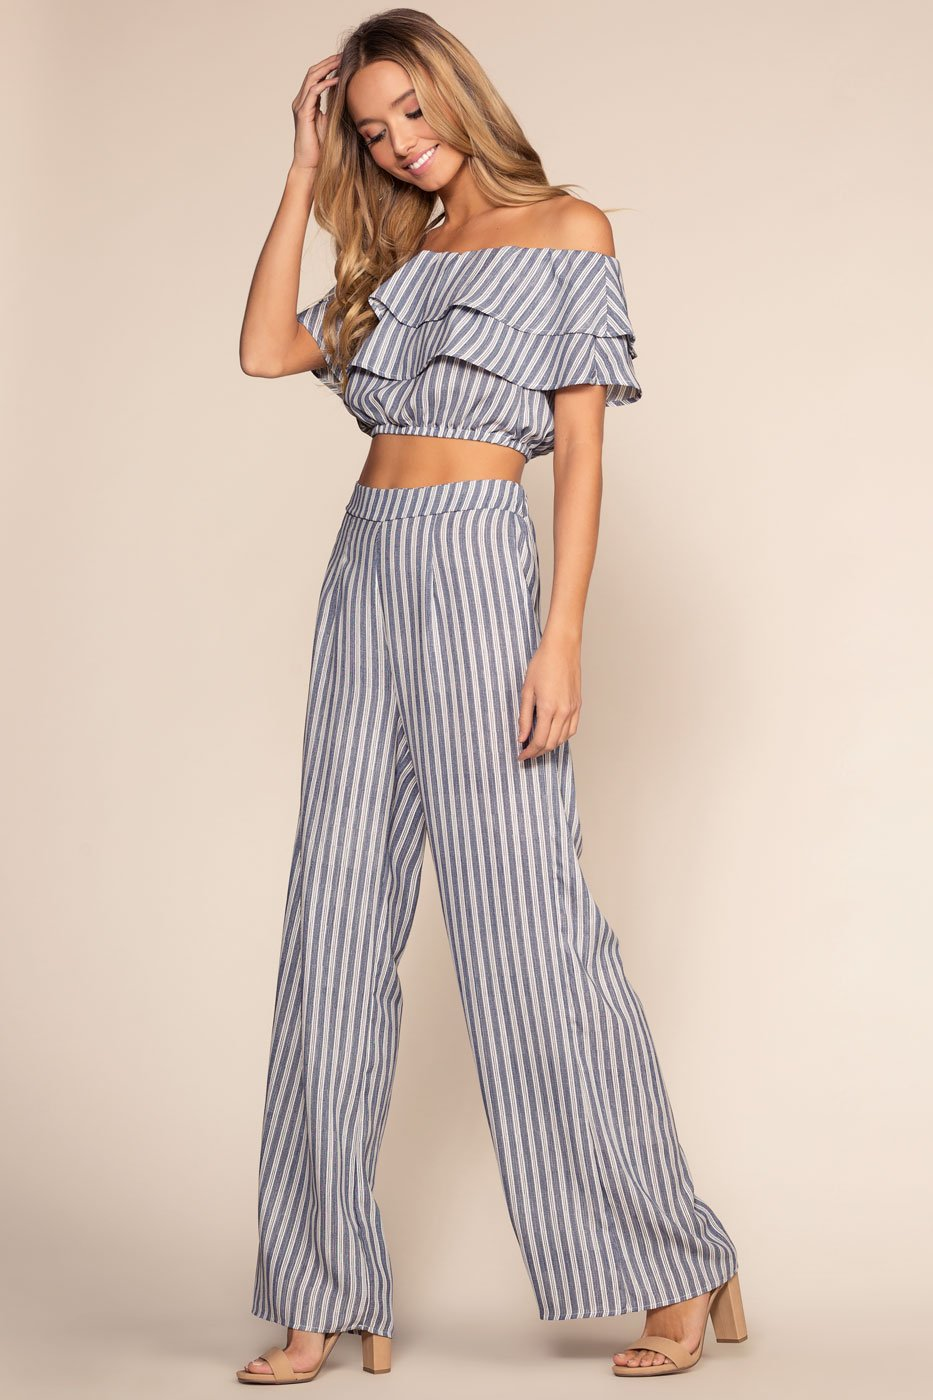 Pants - Free Love Striped High Waisted Pants